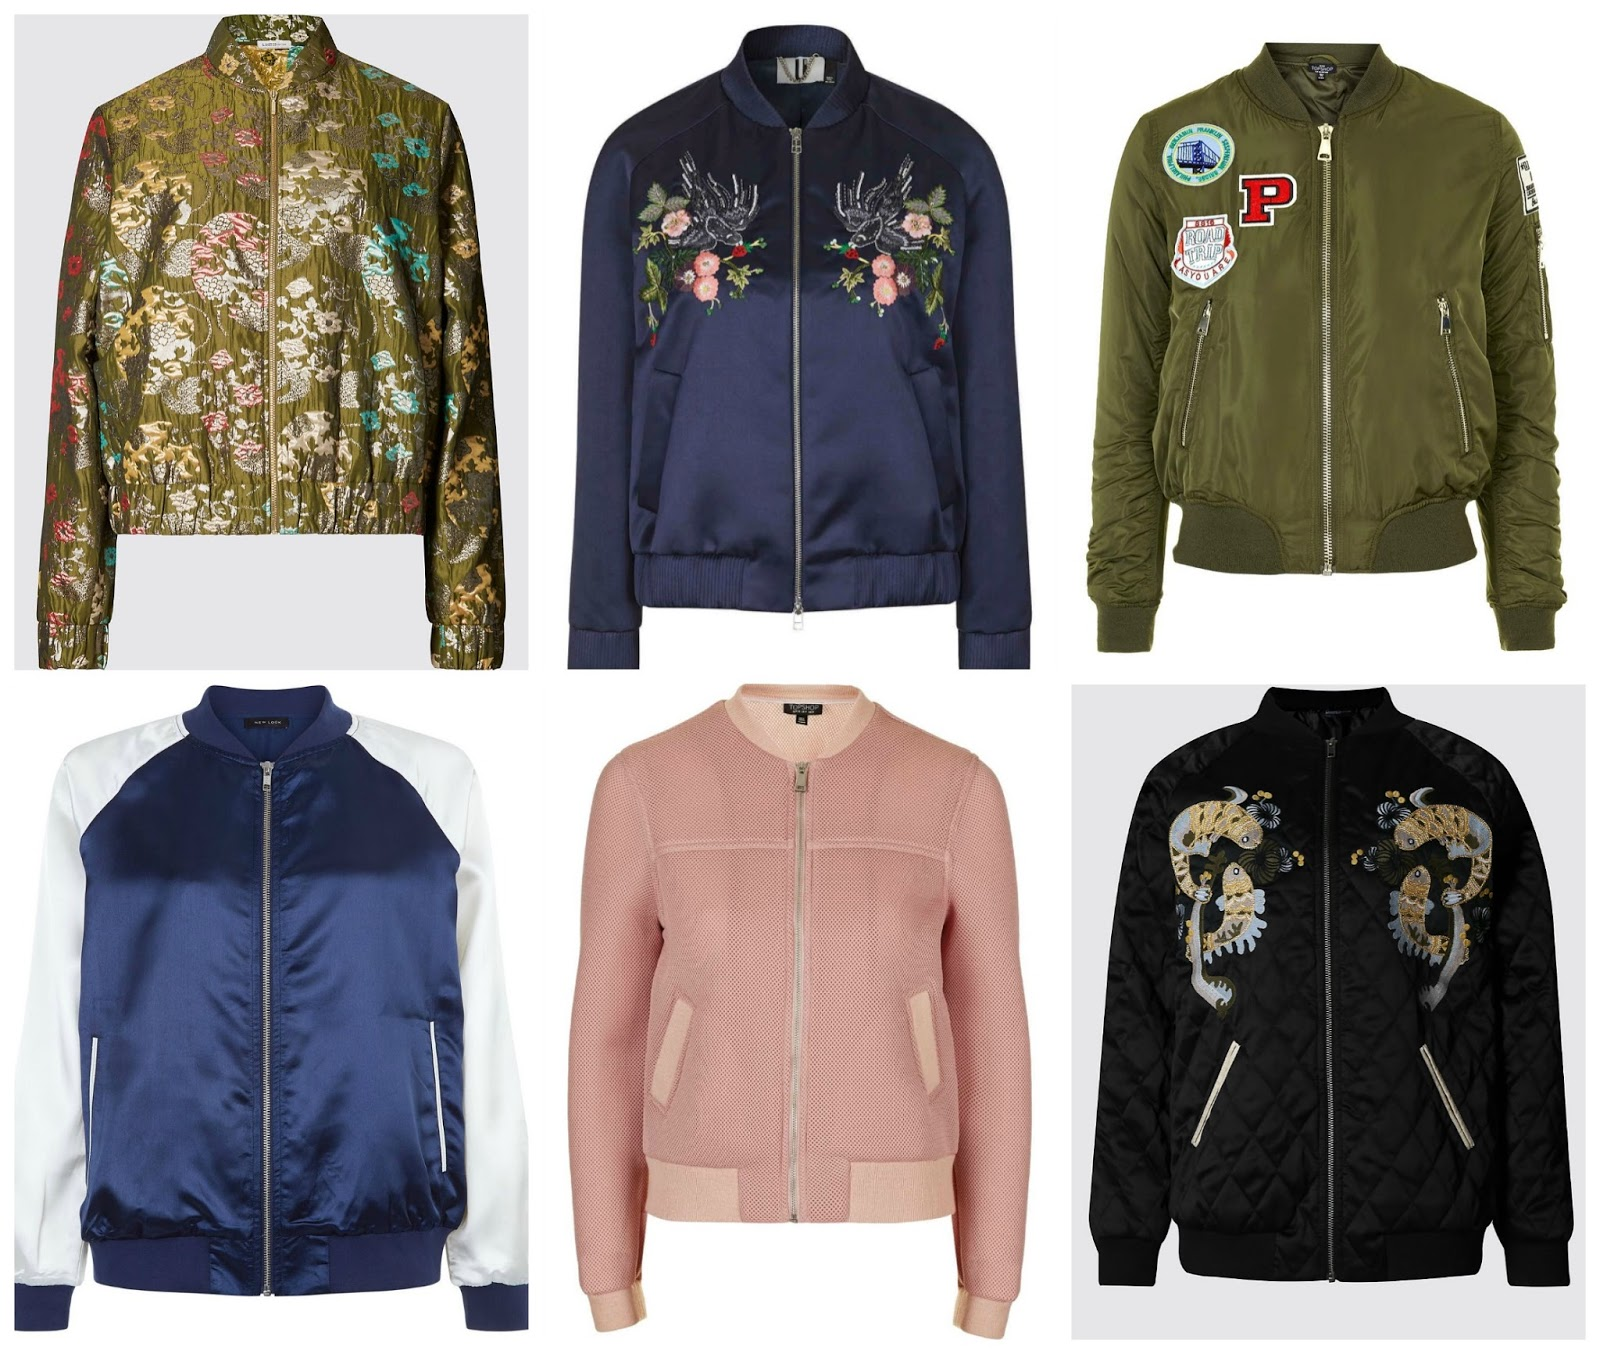 01f886673901e Jacquard Jacket, £59, Limited Edition at Marks & Spencer; Ebury Bomber,  £650, Topshop Unique; Badged MA1 Bomber, £59, Topshop; Quilted Oriental  Bomber, £65, ...